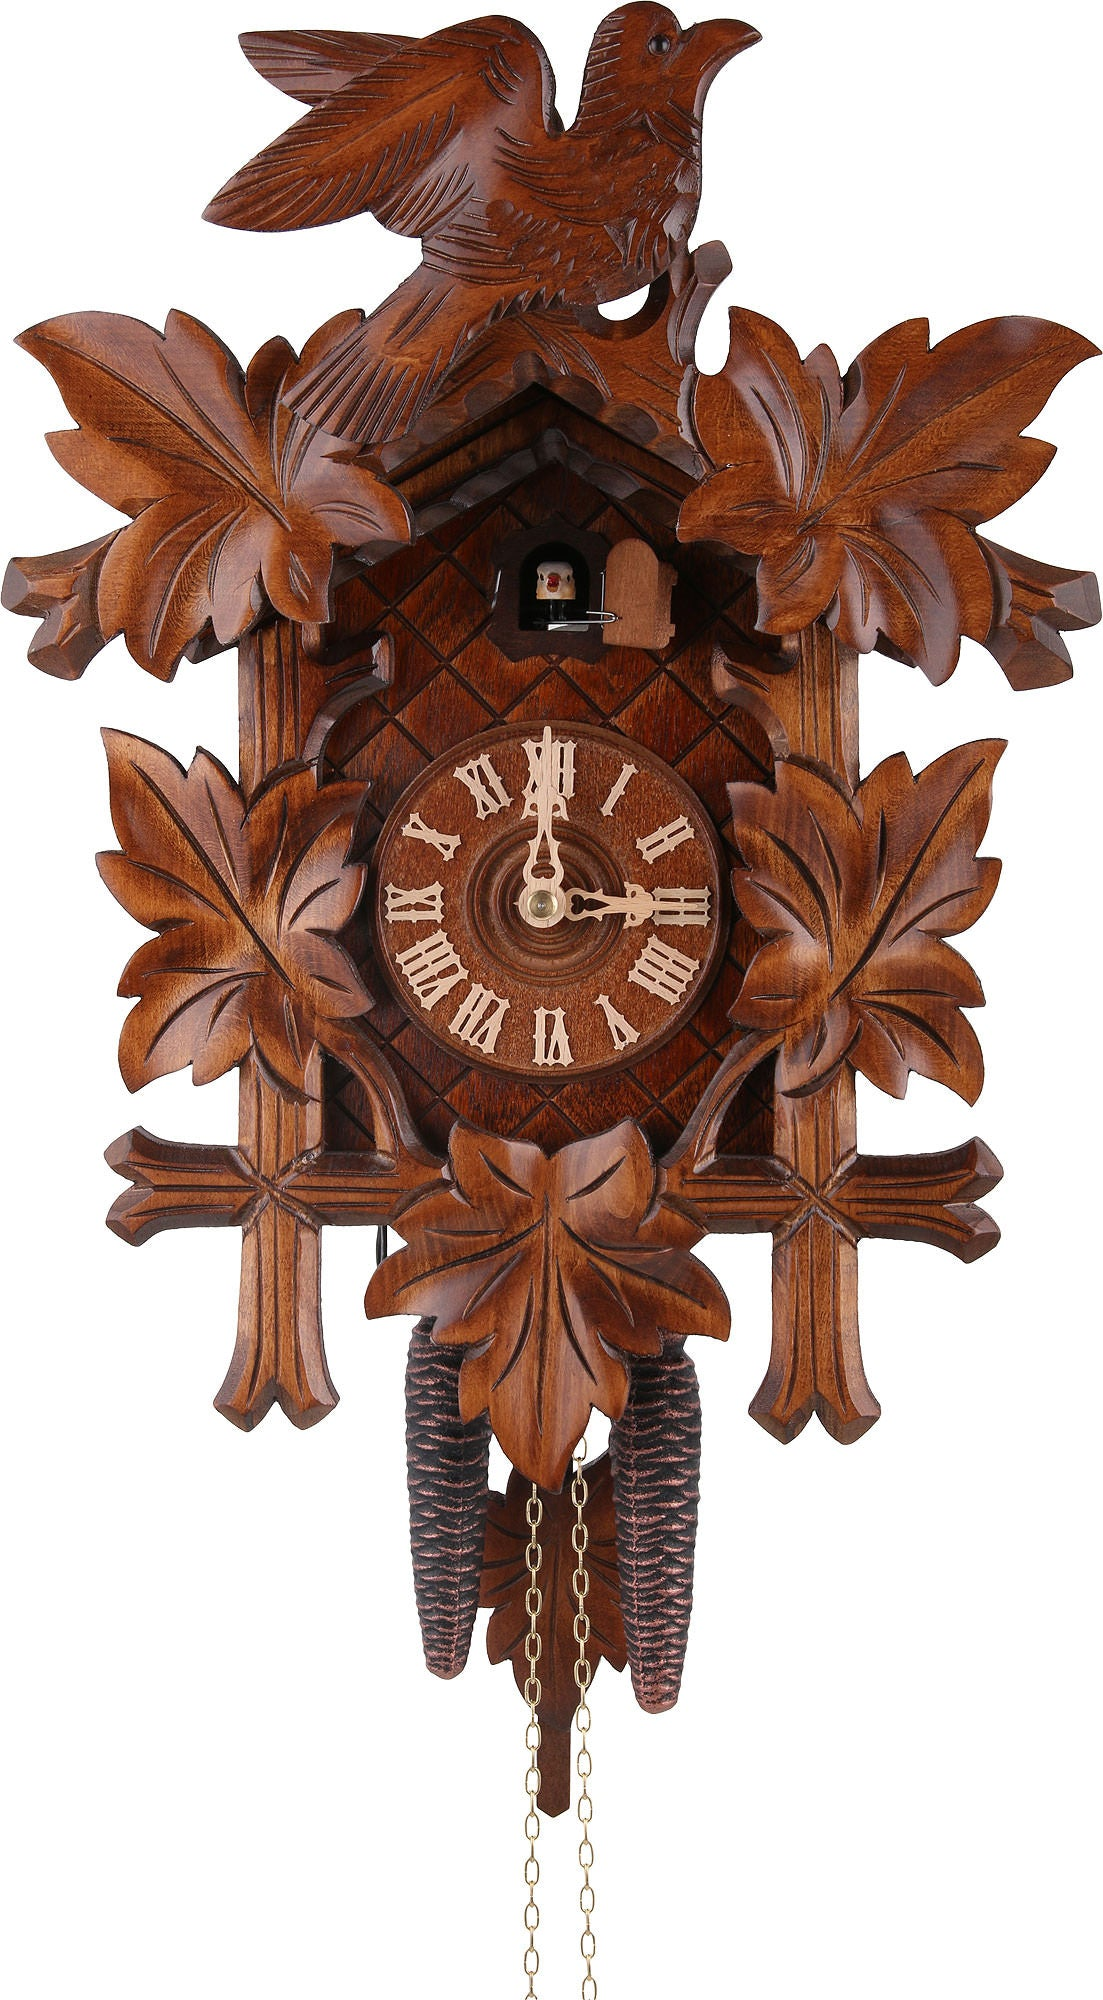 Cuckoo Clock - Carved style 1 day movement cuckoo clock 5 leaves bird 40cm by Rombach & Haas - Cuckoo Collections